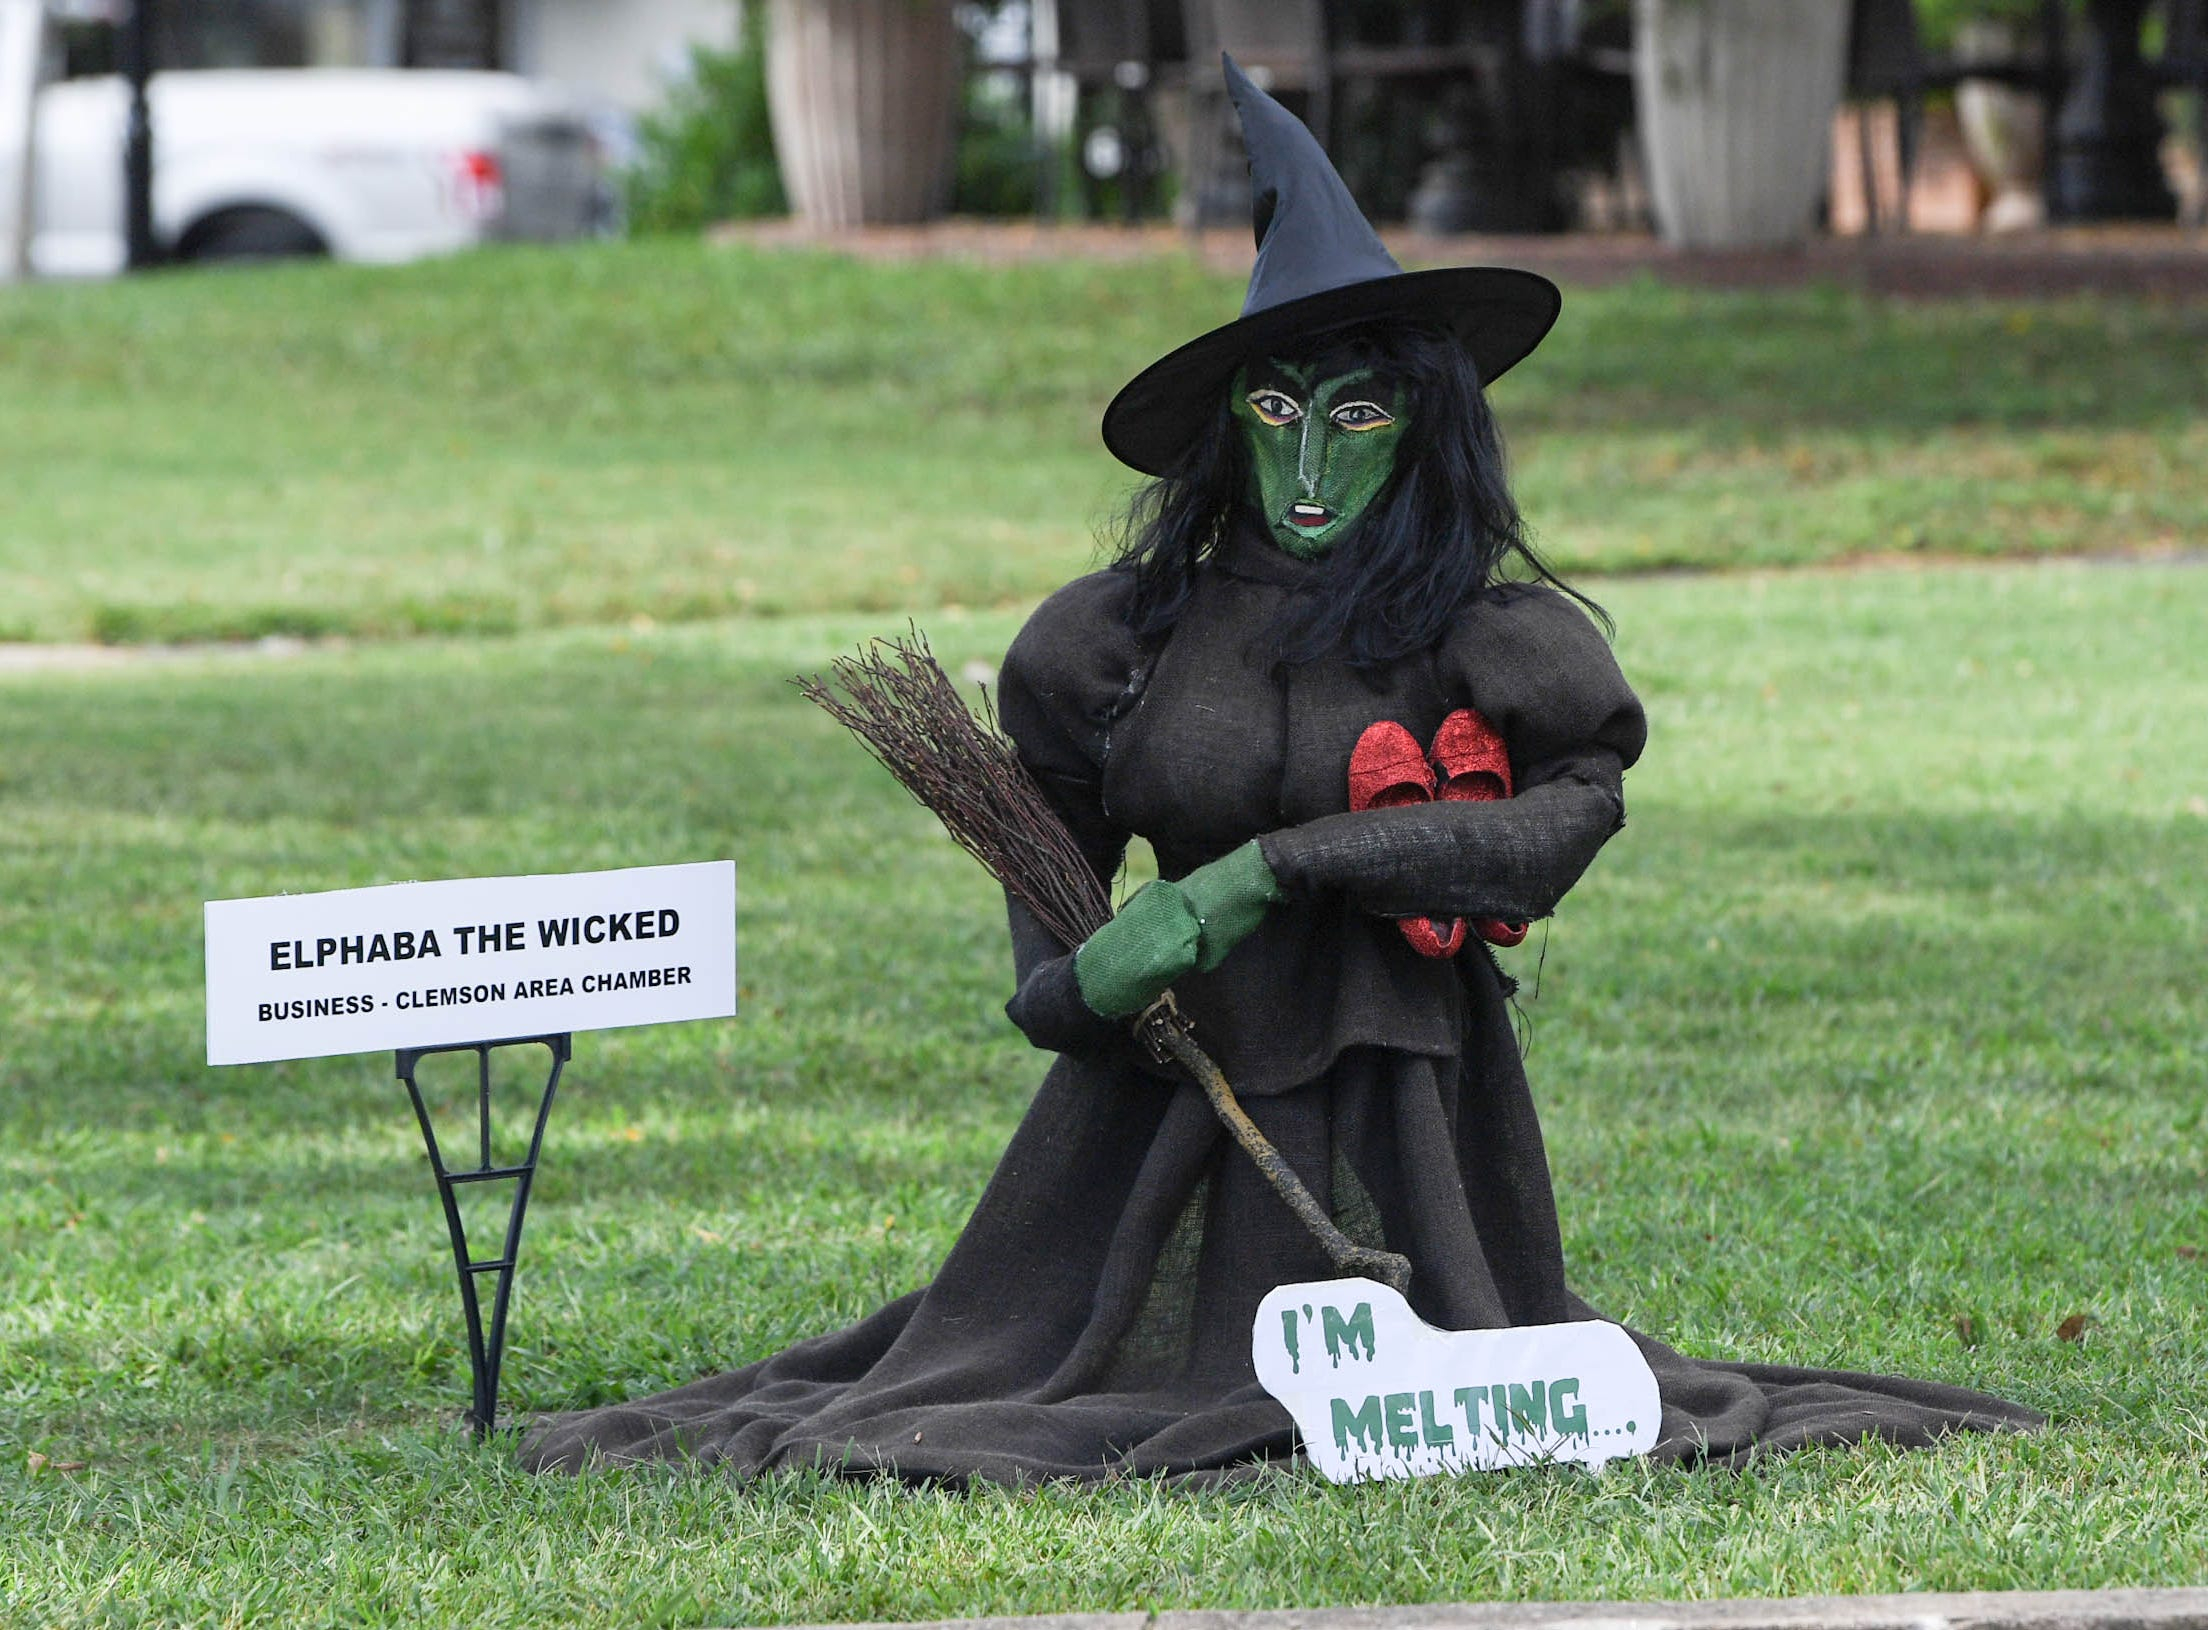 Elphaba the Wicked, a scarecrow made by the Clemson Area Chamber, is one of many in The Pendleton Scarecrow Contest leading up to the 20th Fall Harvest Festival in the village green on Saturday, October 6 from 10 a.m. to 5 p.m. The annual contest in Pendleton for businesses, individuals, groups, organizations and churches who create fun not scary Scarecrows. People driving around the downtown square can see different theme scarecrows.